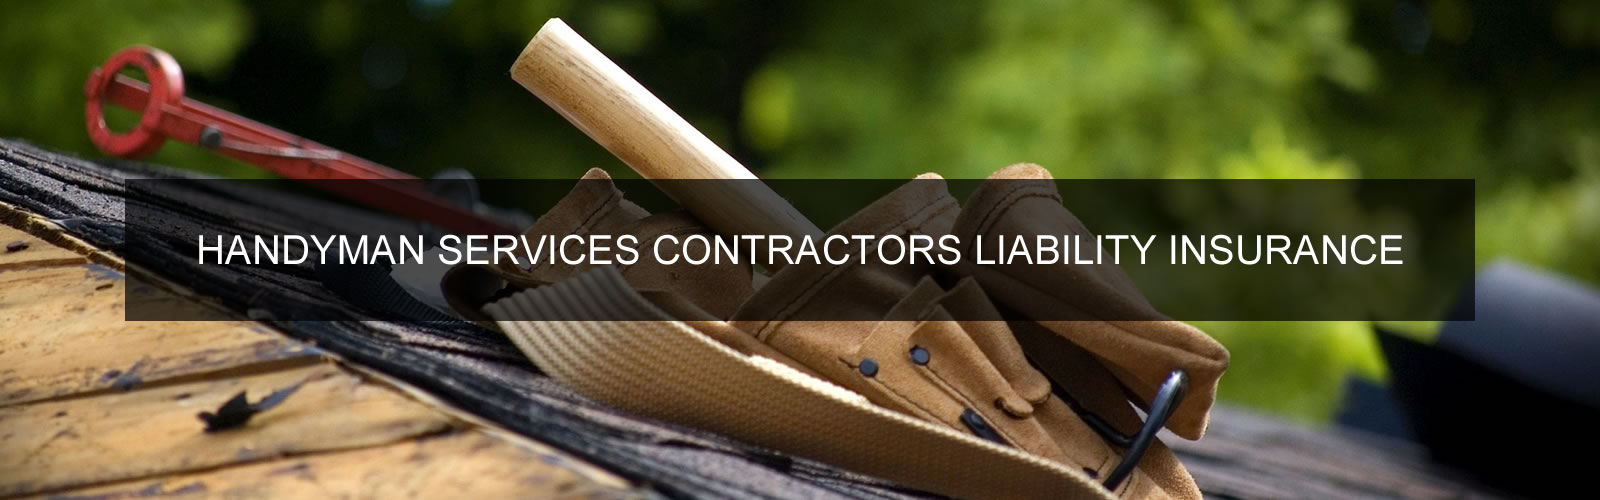 Handyman Services Contractors Liability Insurance